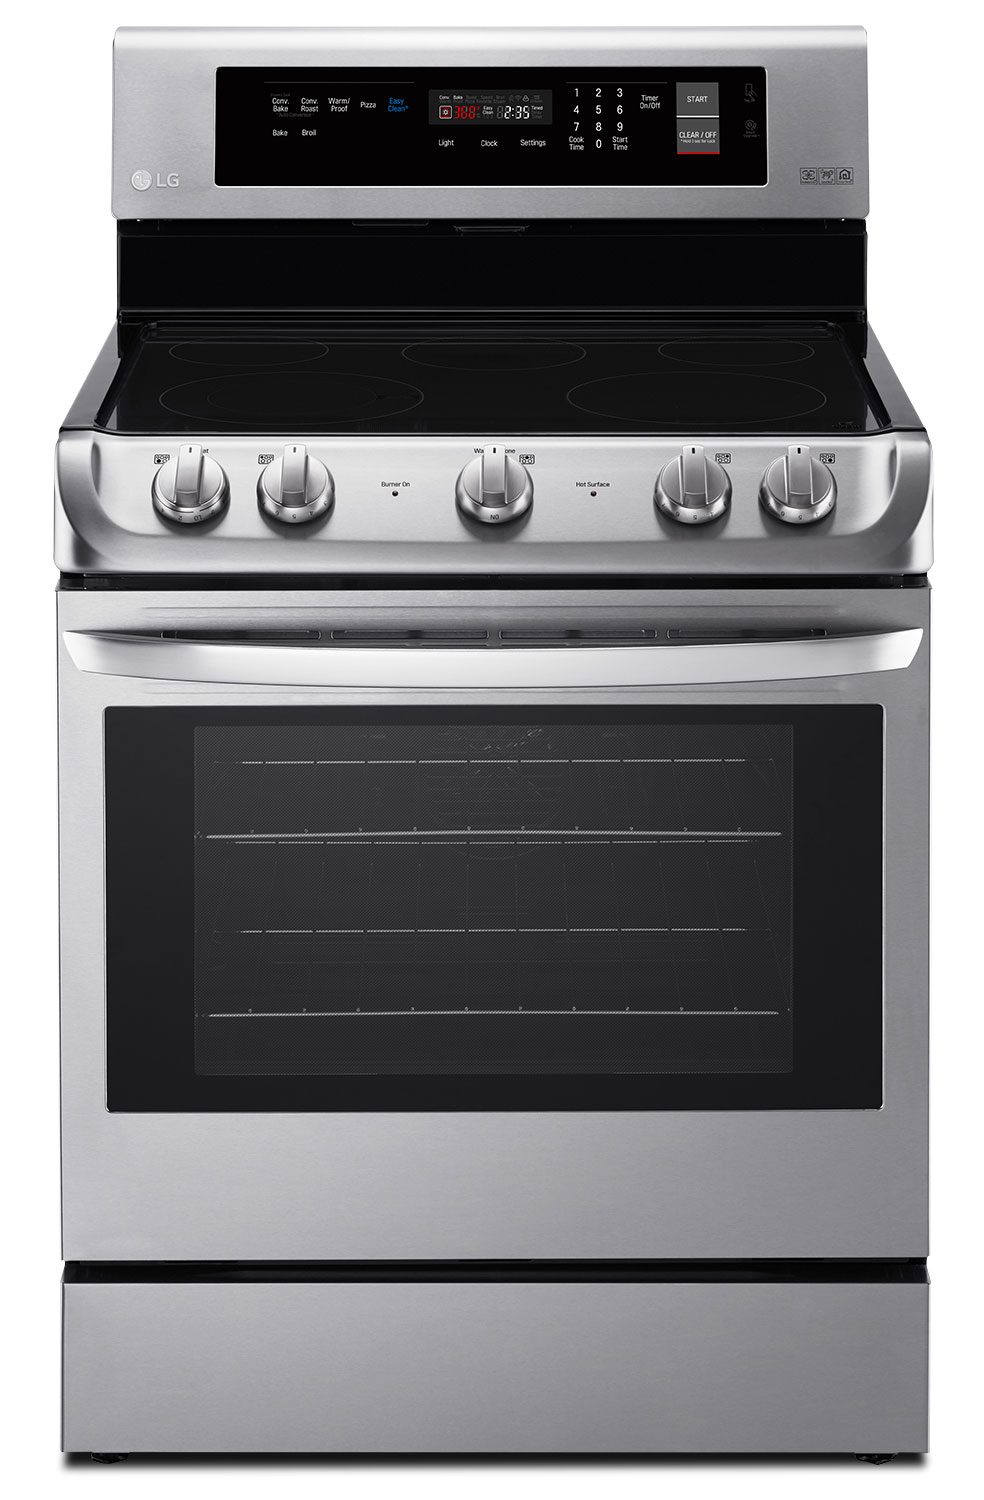 LG 6.3 Cu. Ft. Electric Freestanding Range with ProBake Convection™ – LRE4211ST